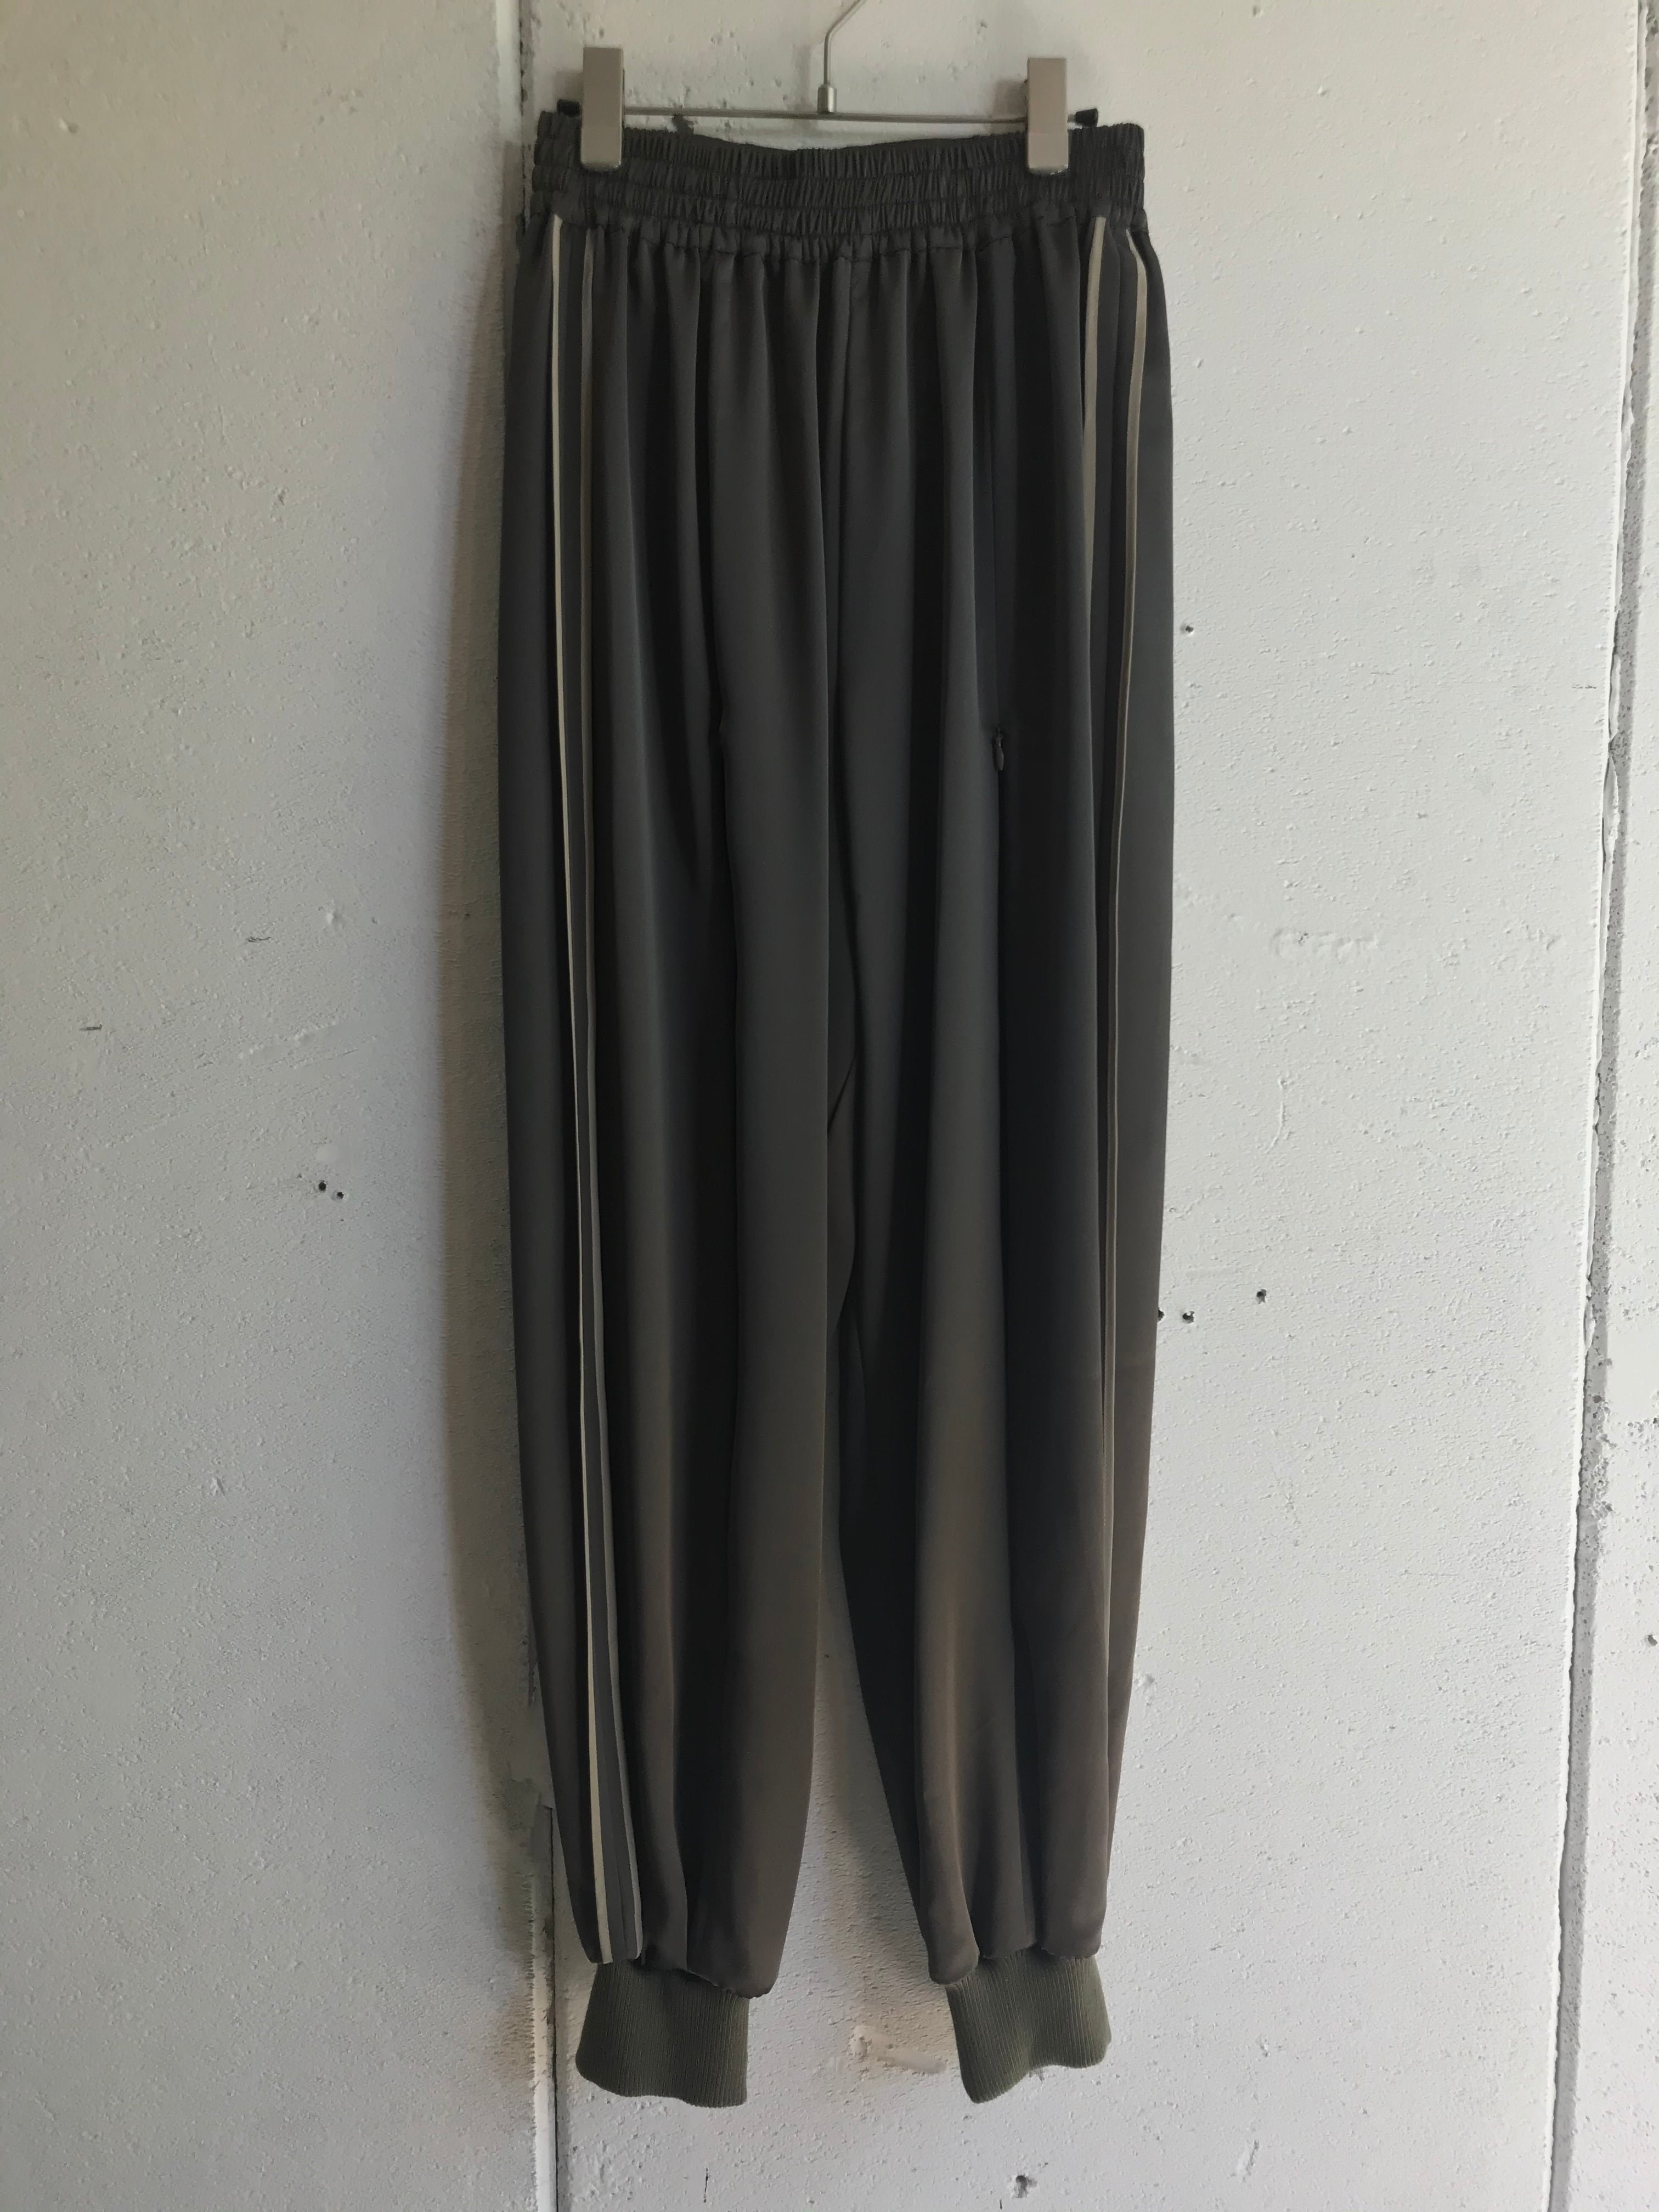 SHIROMA front open pants